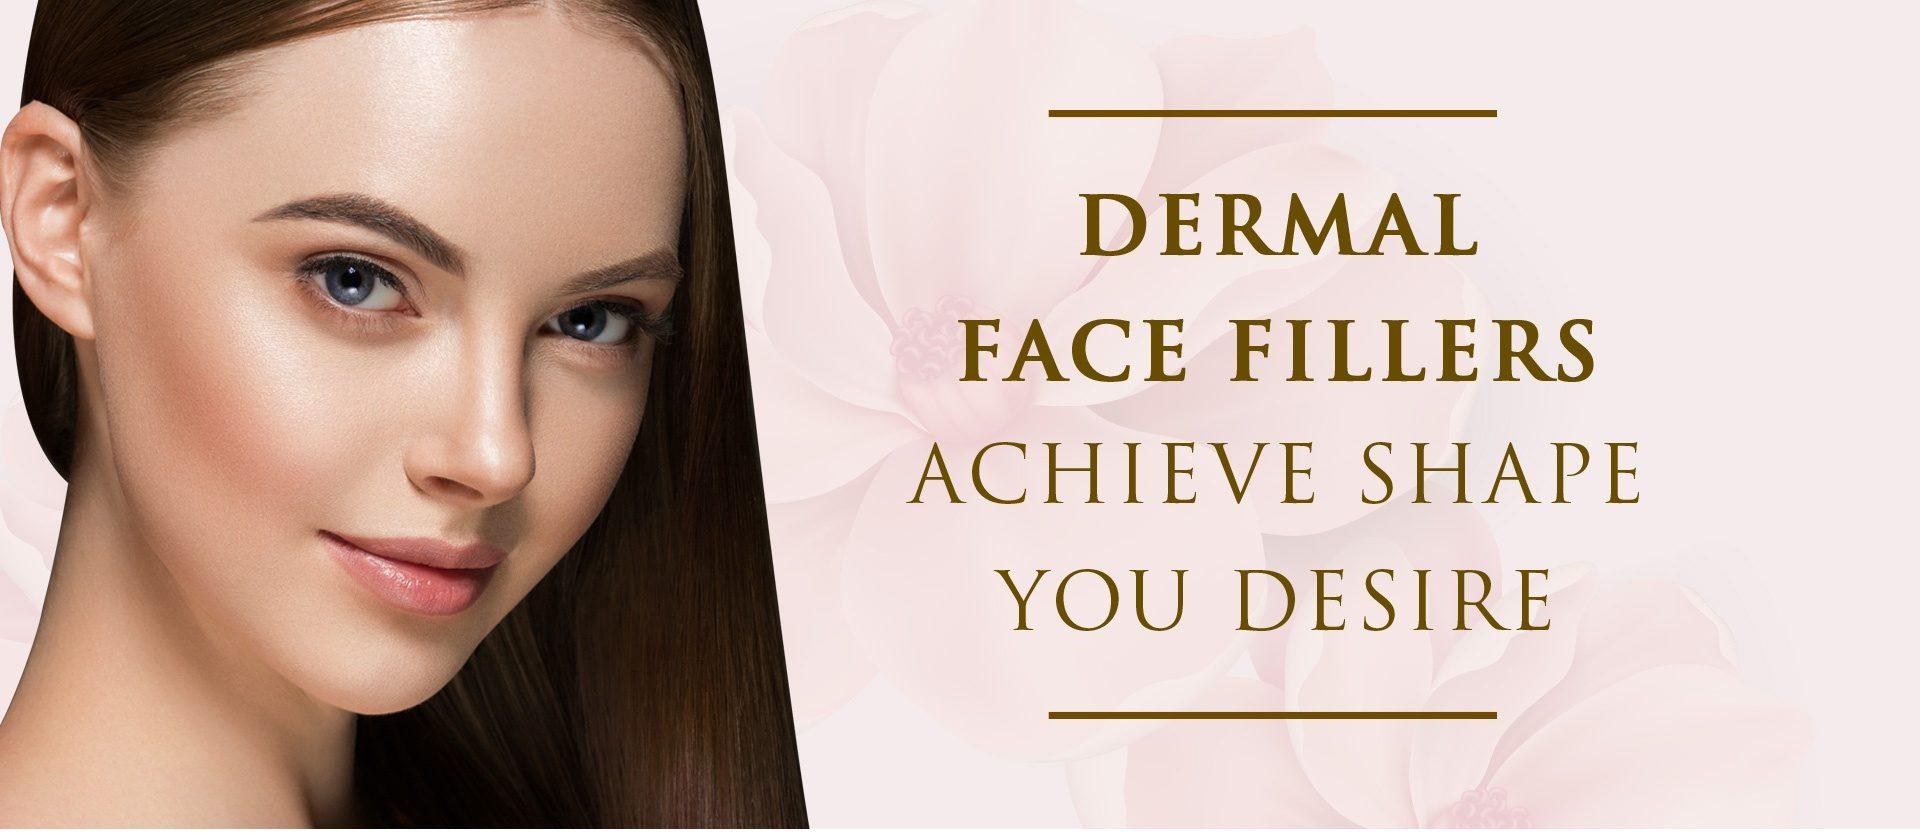 dermal face fillers banner